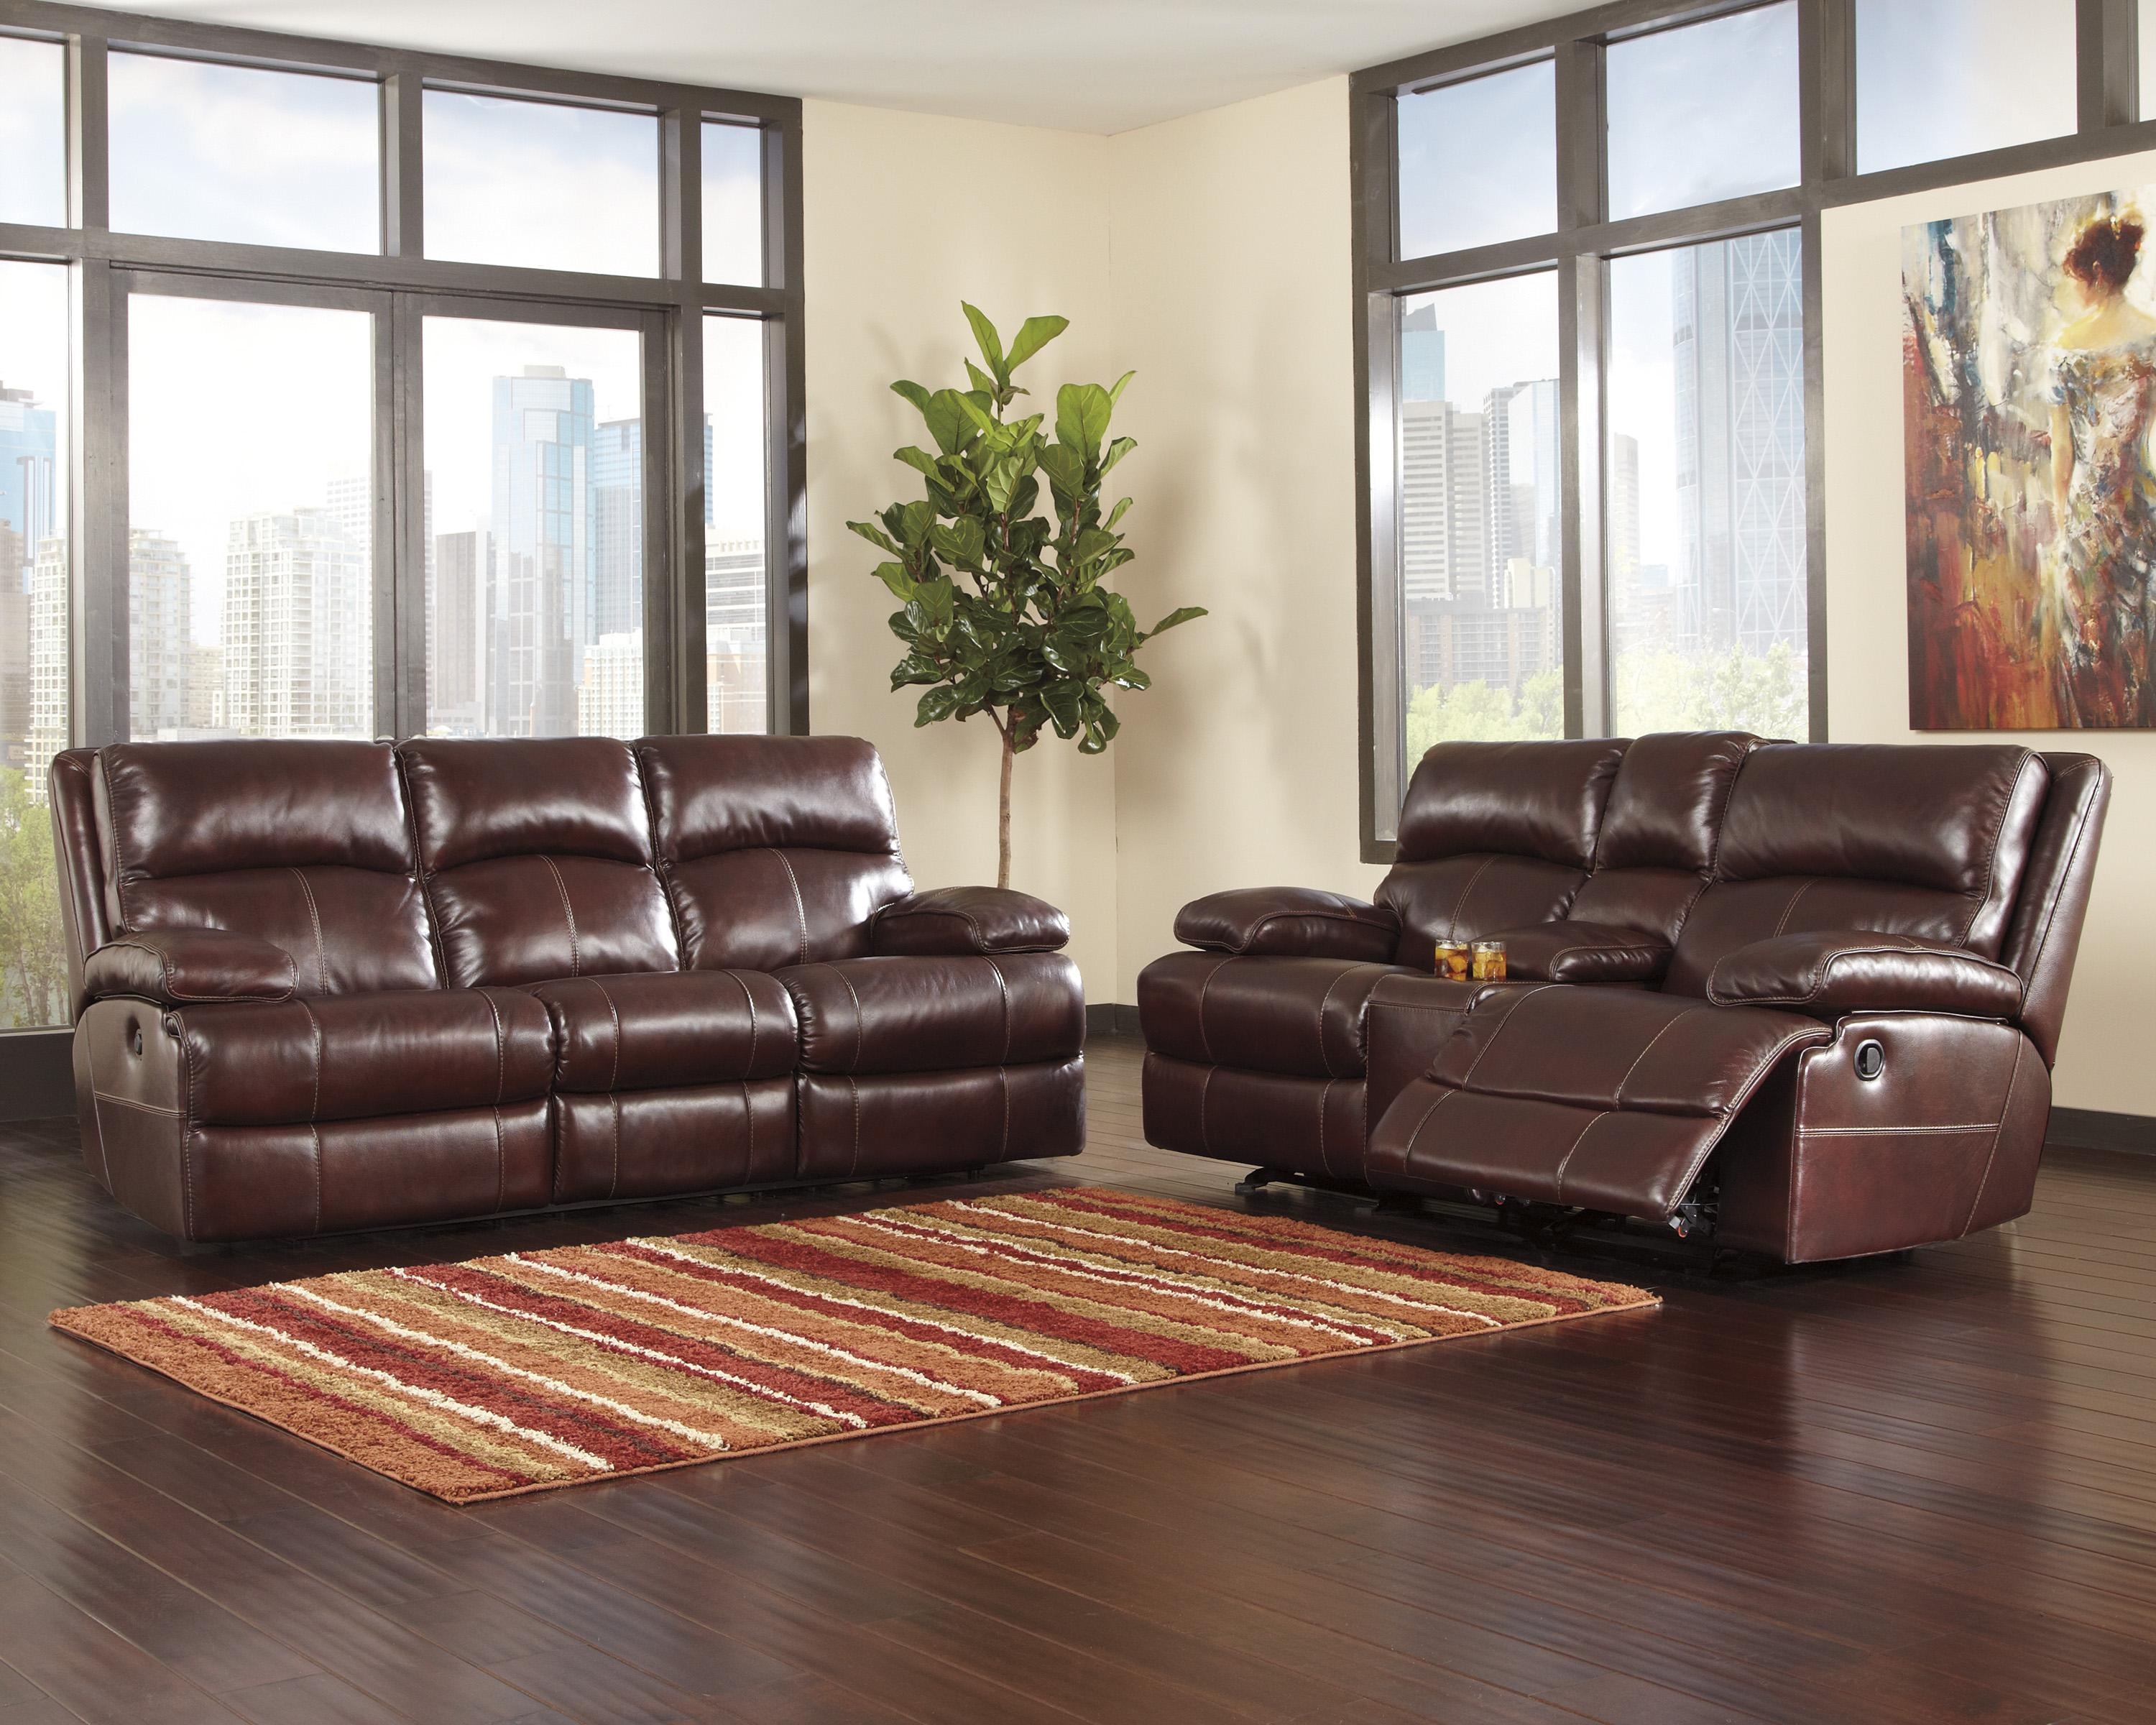 Burgundy Leather Sofa Set | Tehranmix Decoration Pertaining To Burgundy Leather Sofa Sets (View 13 of 20)